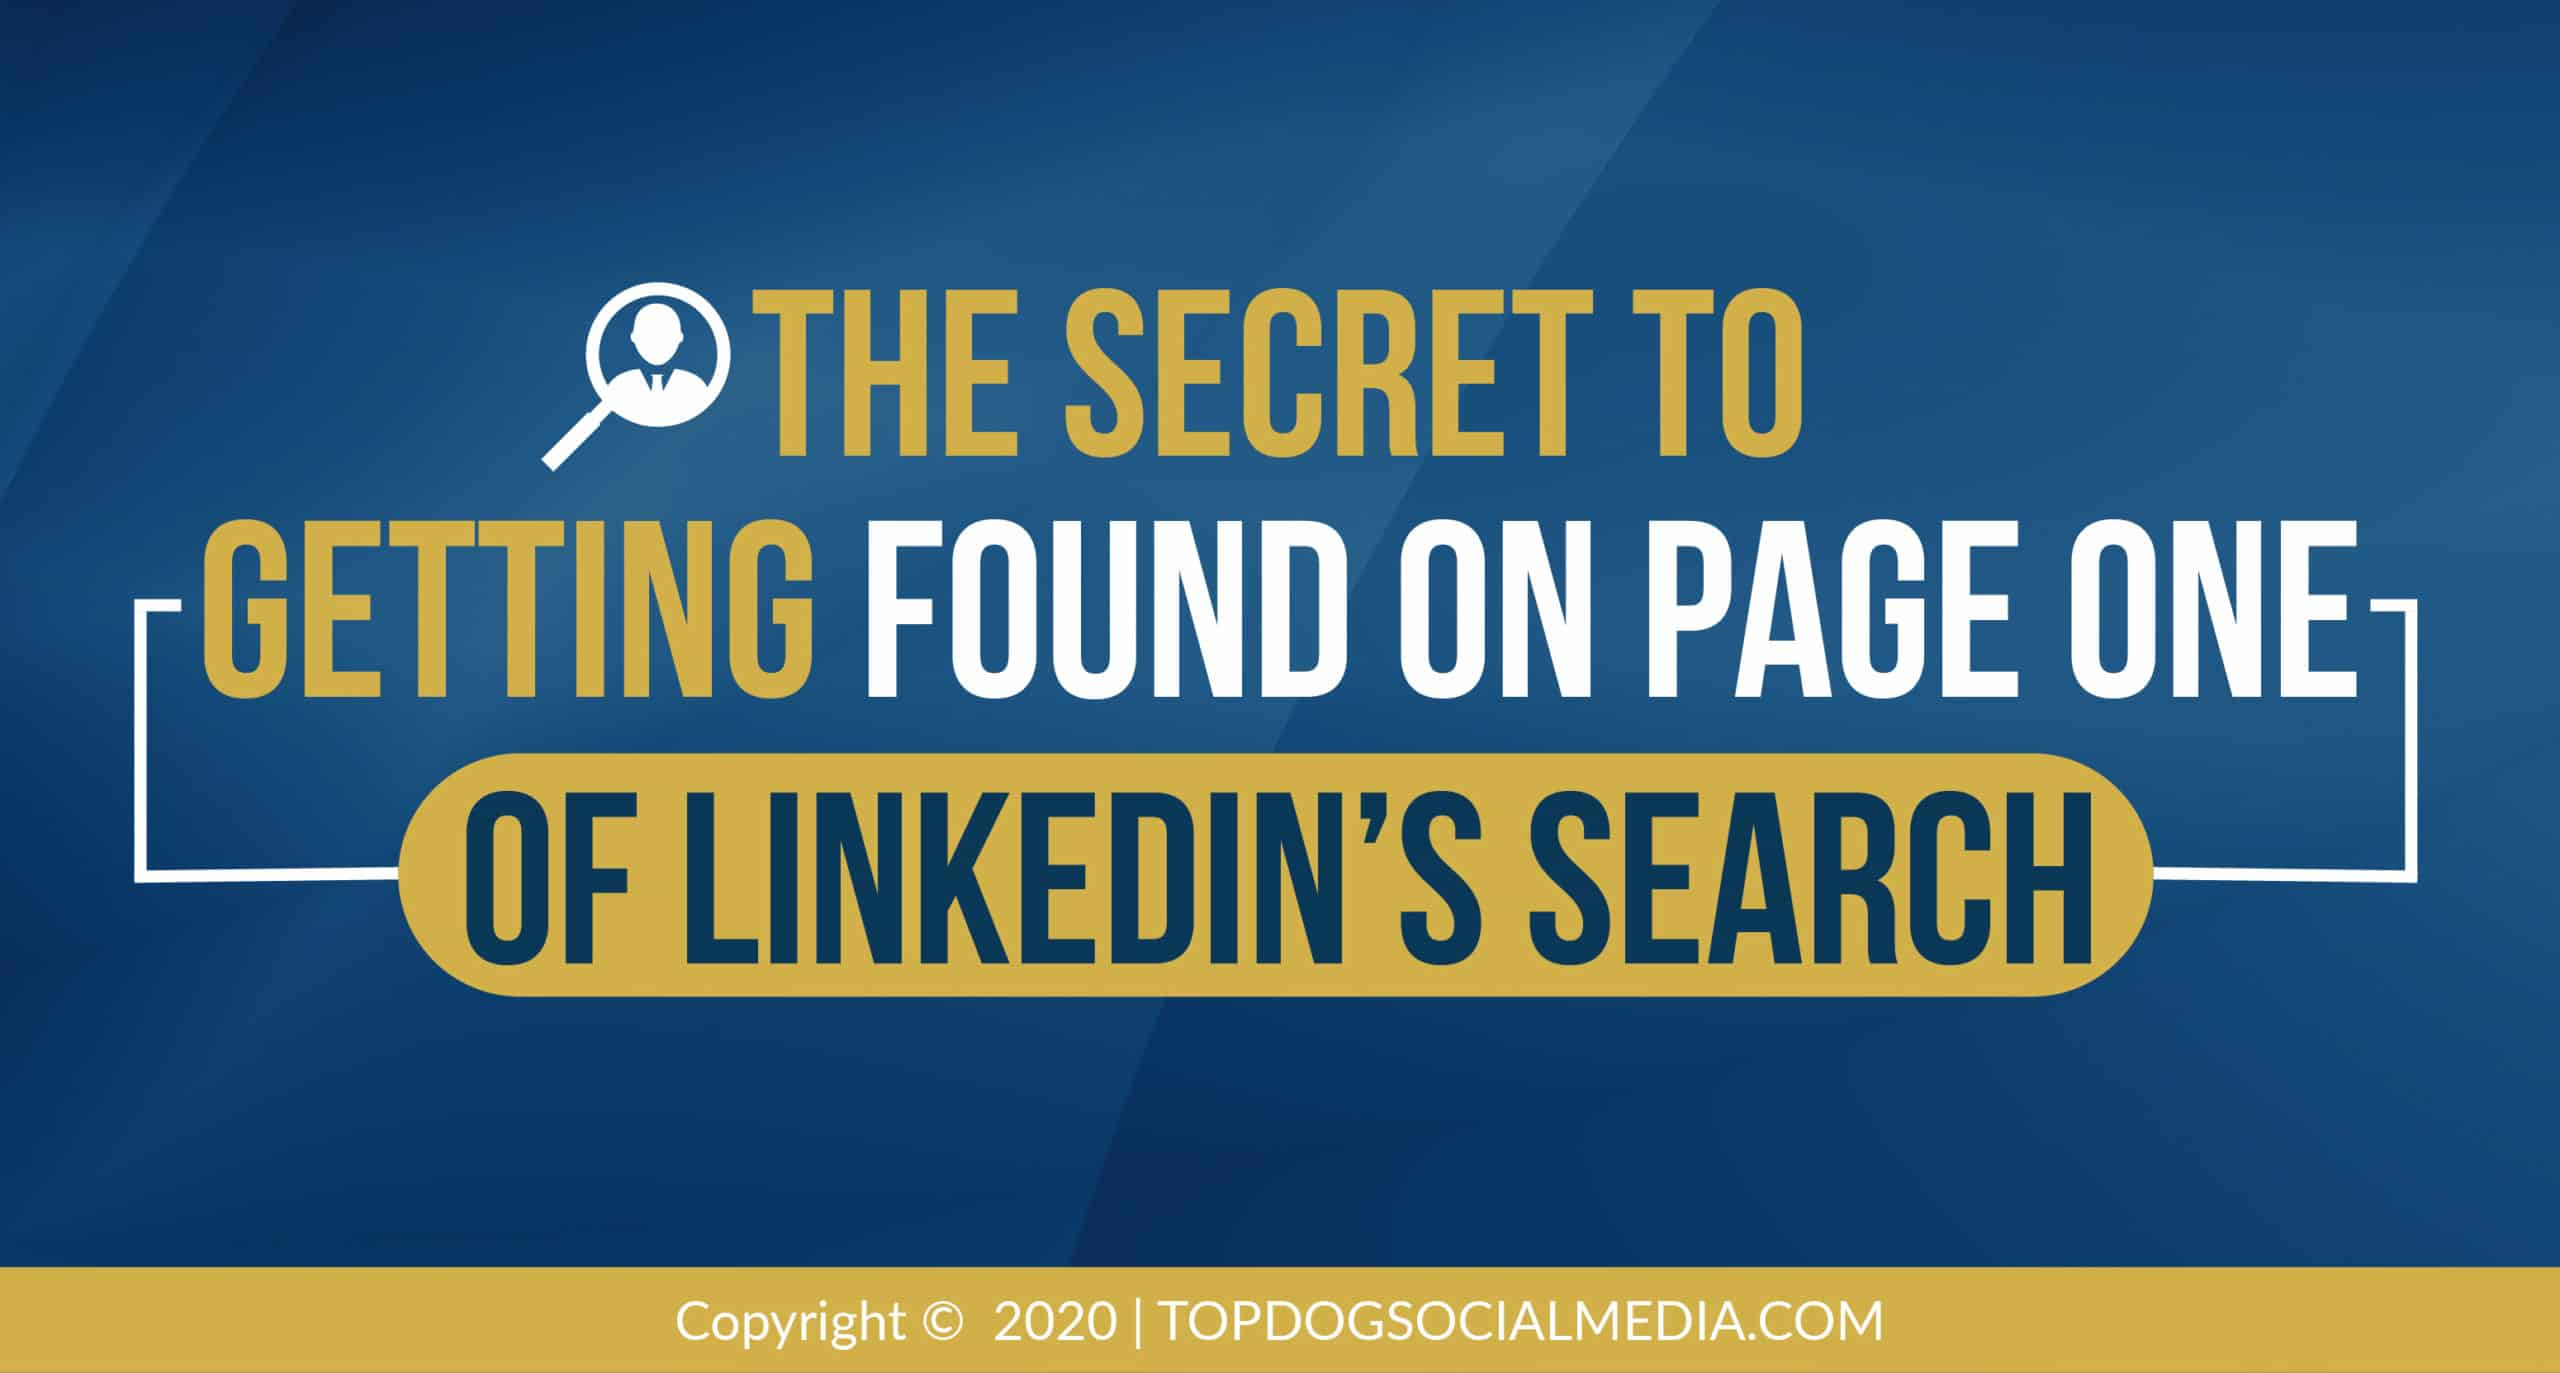 The Secret to Getting on Page One of LinkedIn's Search Results